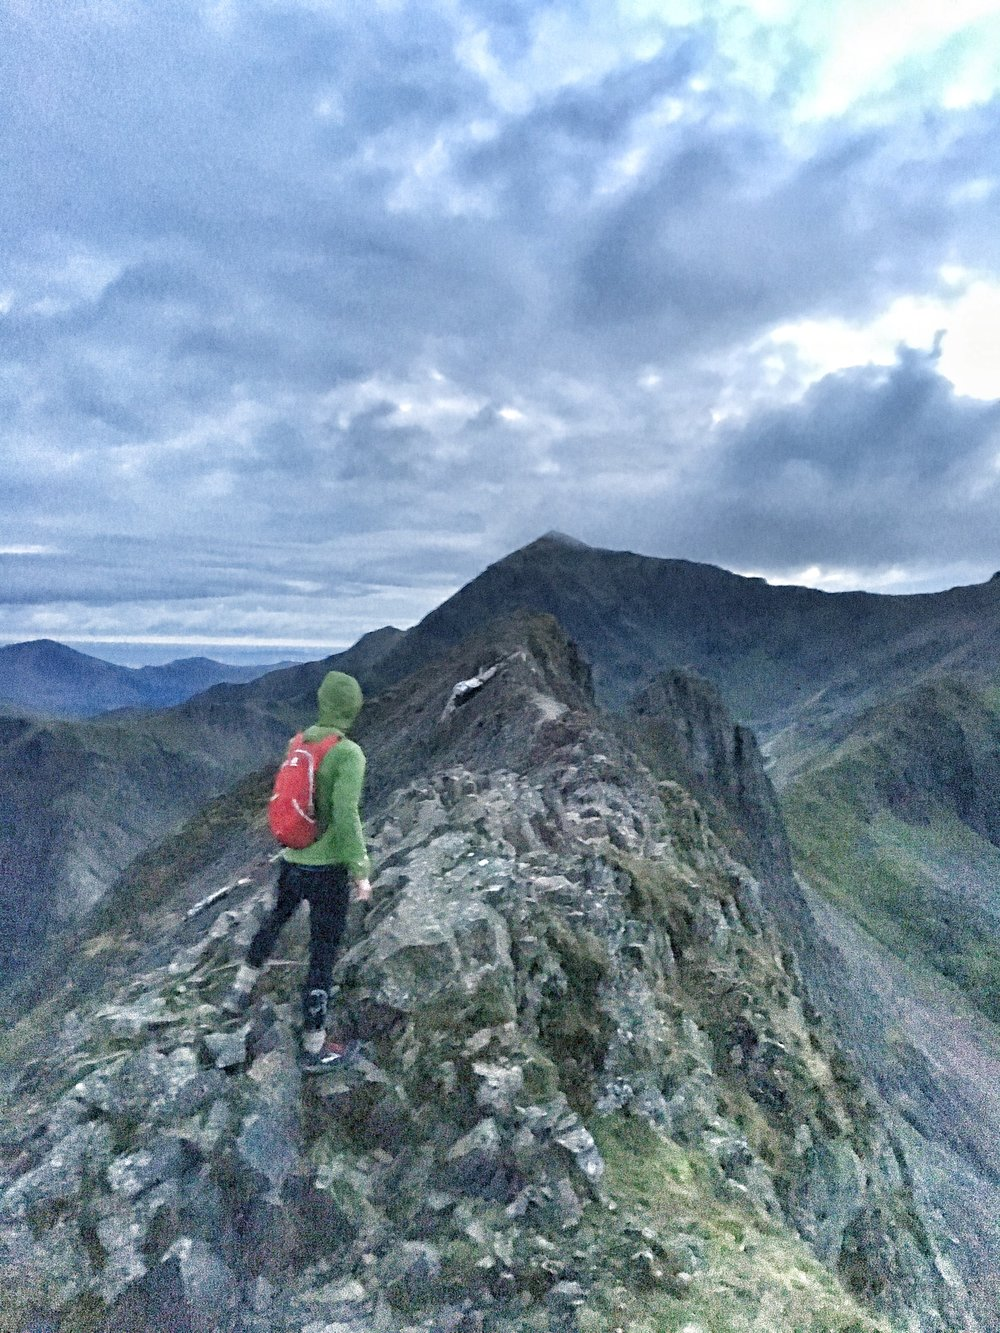 Trying to convey the experience of hiking Crib Goch in the dark is difficult. This photo is the best I could do, but I suggest you go there and experience it yourself.